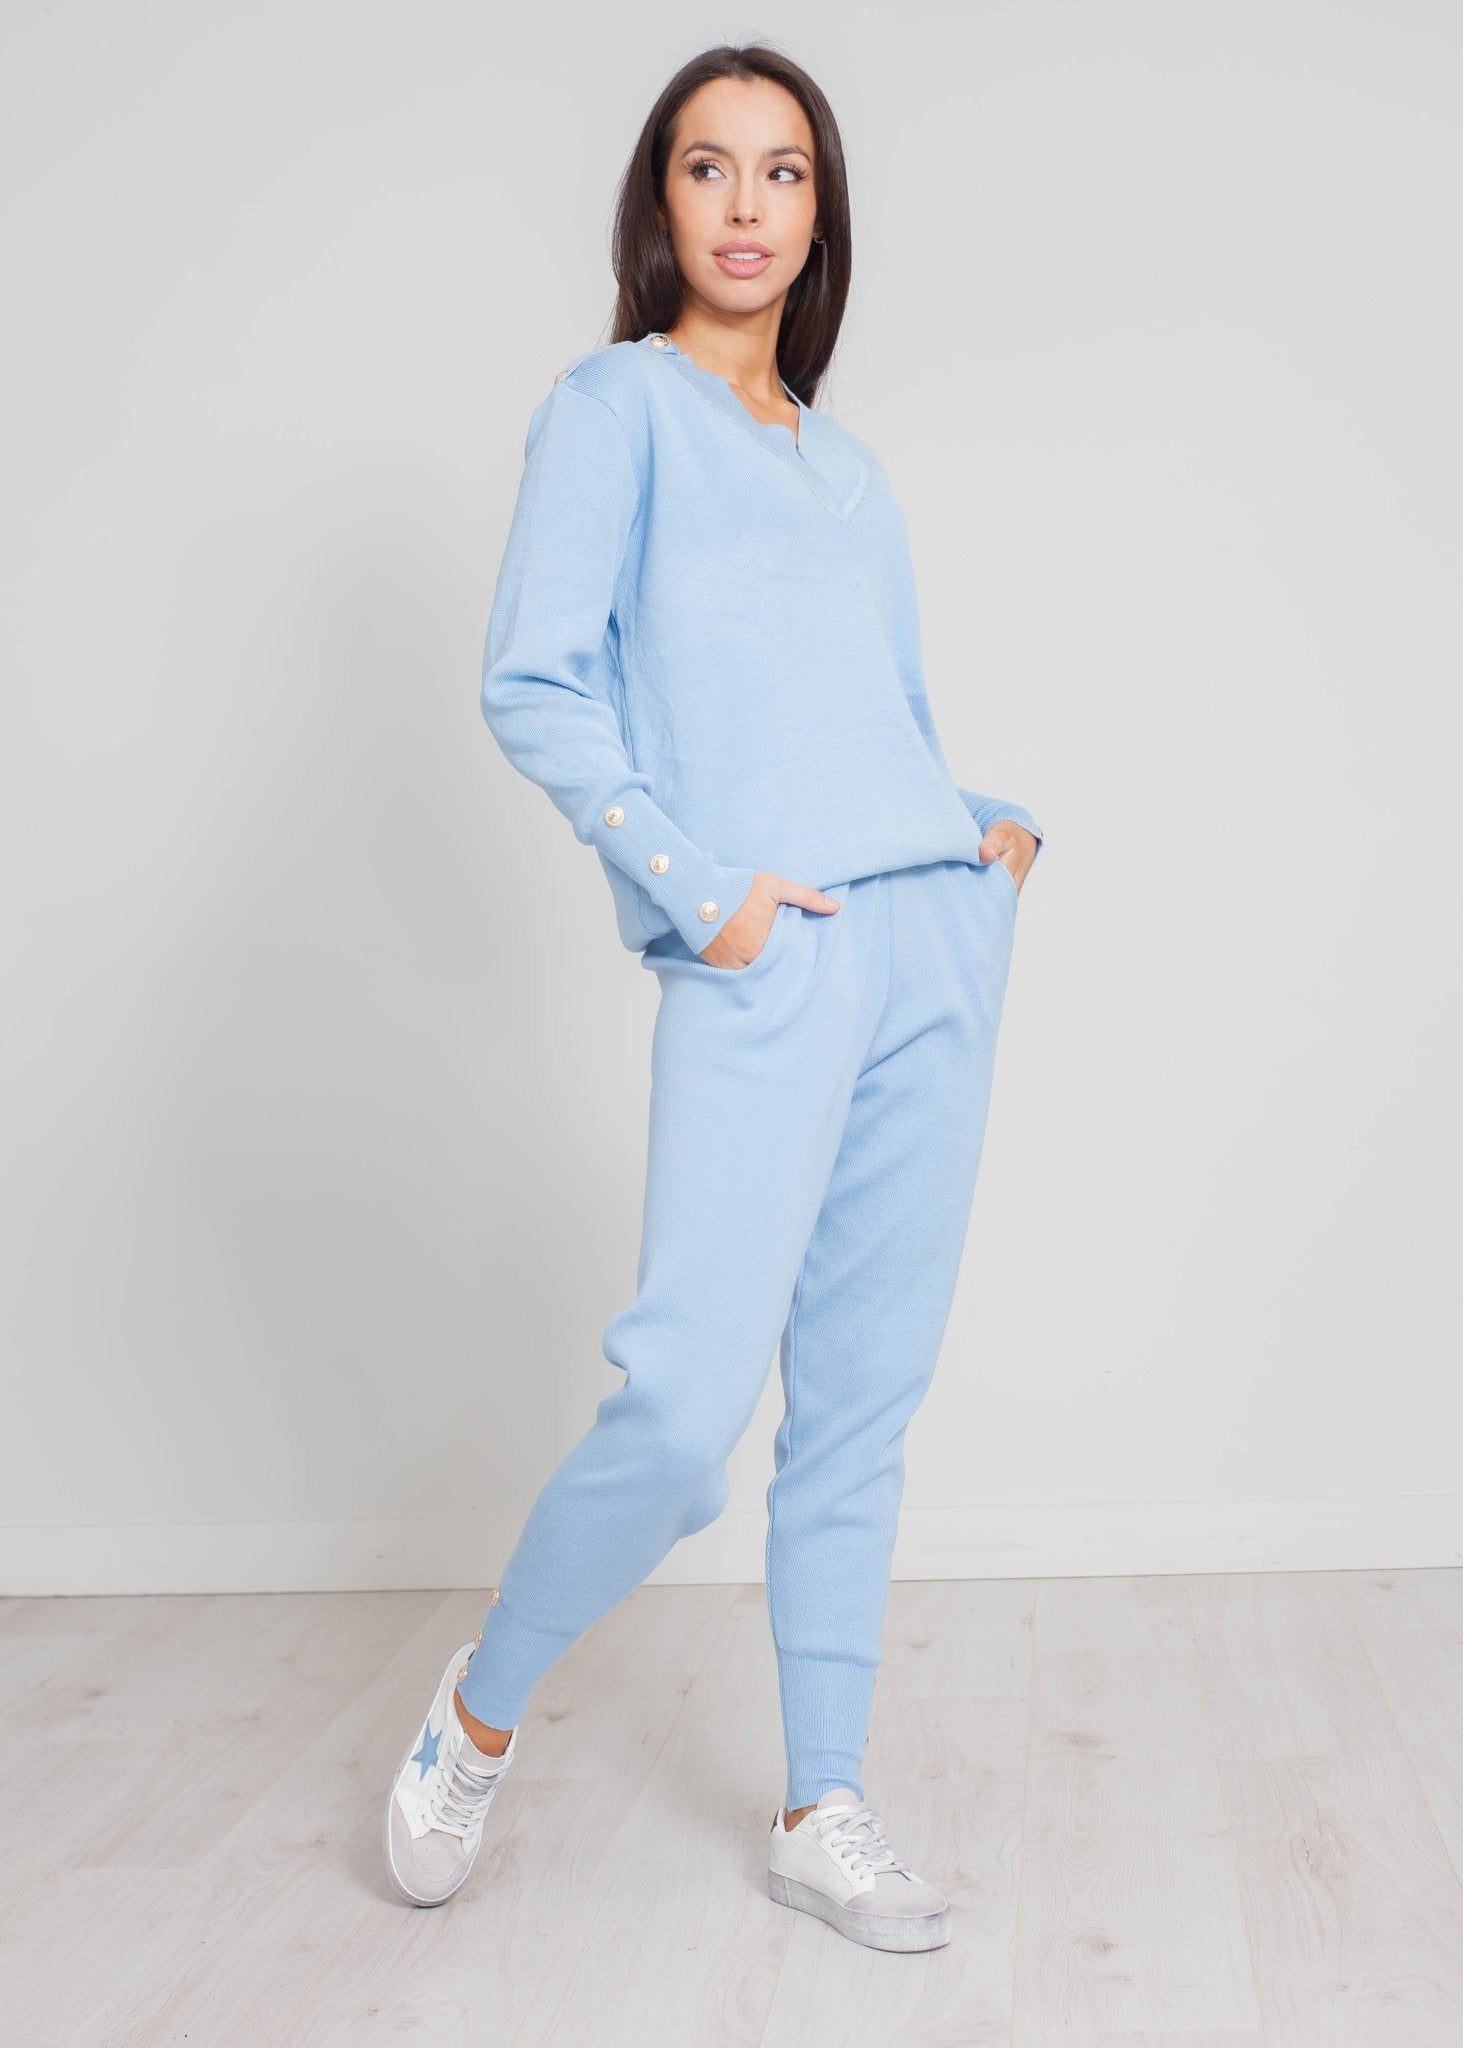 Samantha V-Neck Lounge Set In Blue - The Walk in Wardrobe